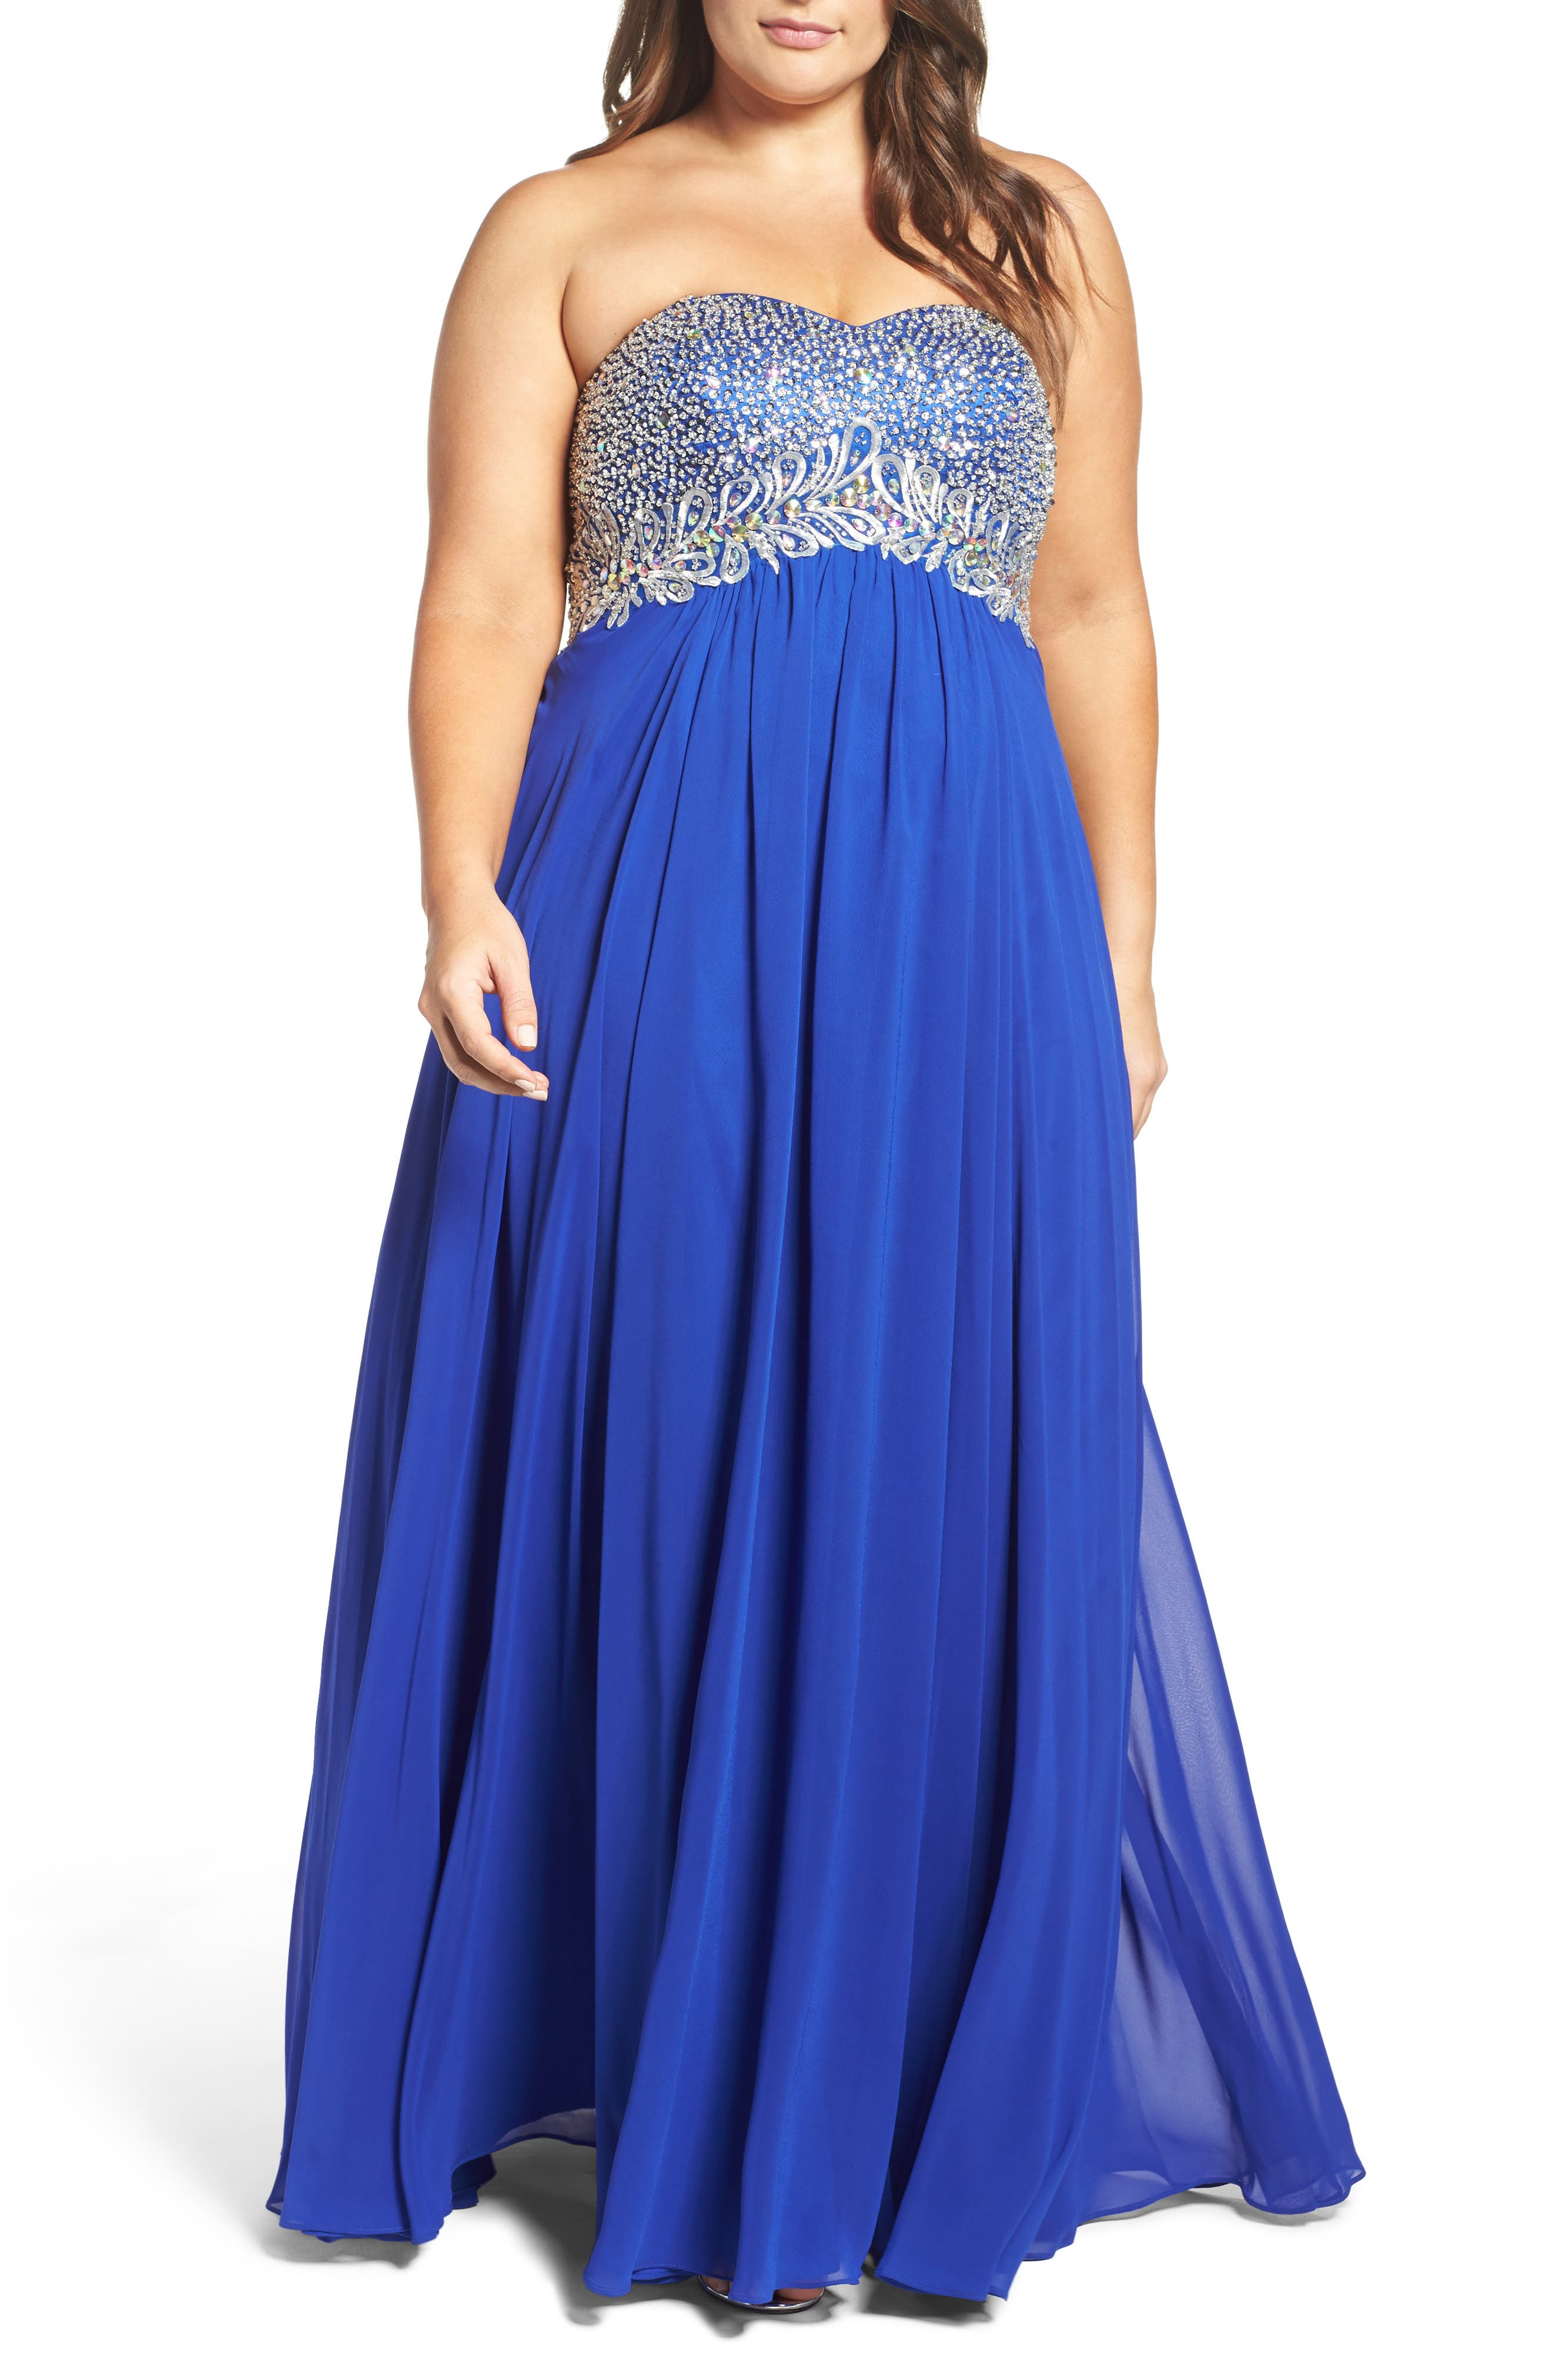 Decode 1.8 Embellished Strapless Gown (Plus Size)